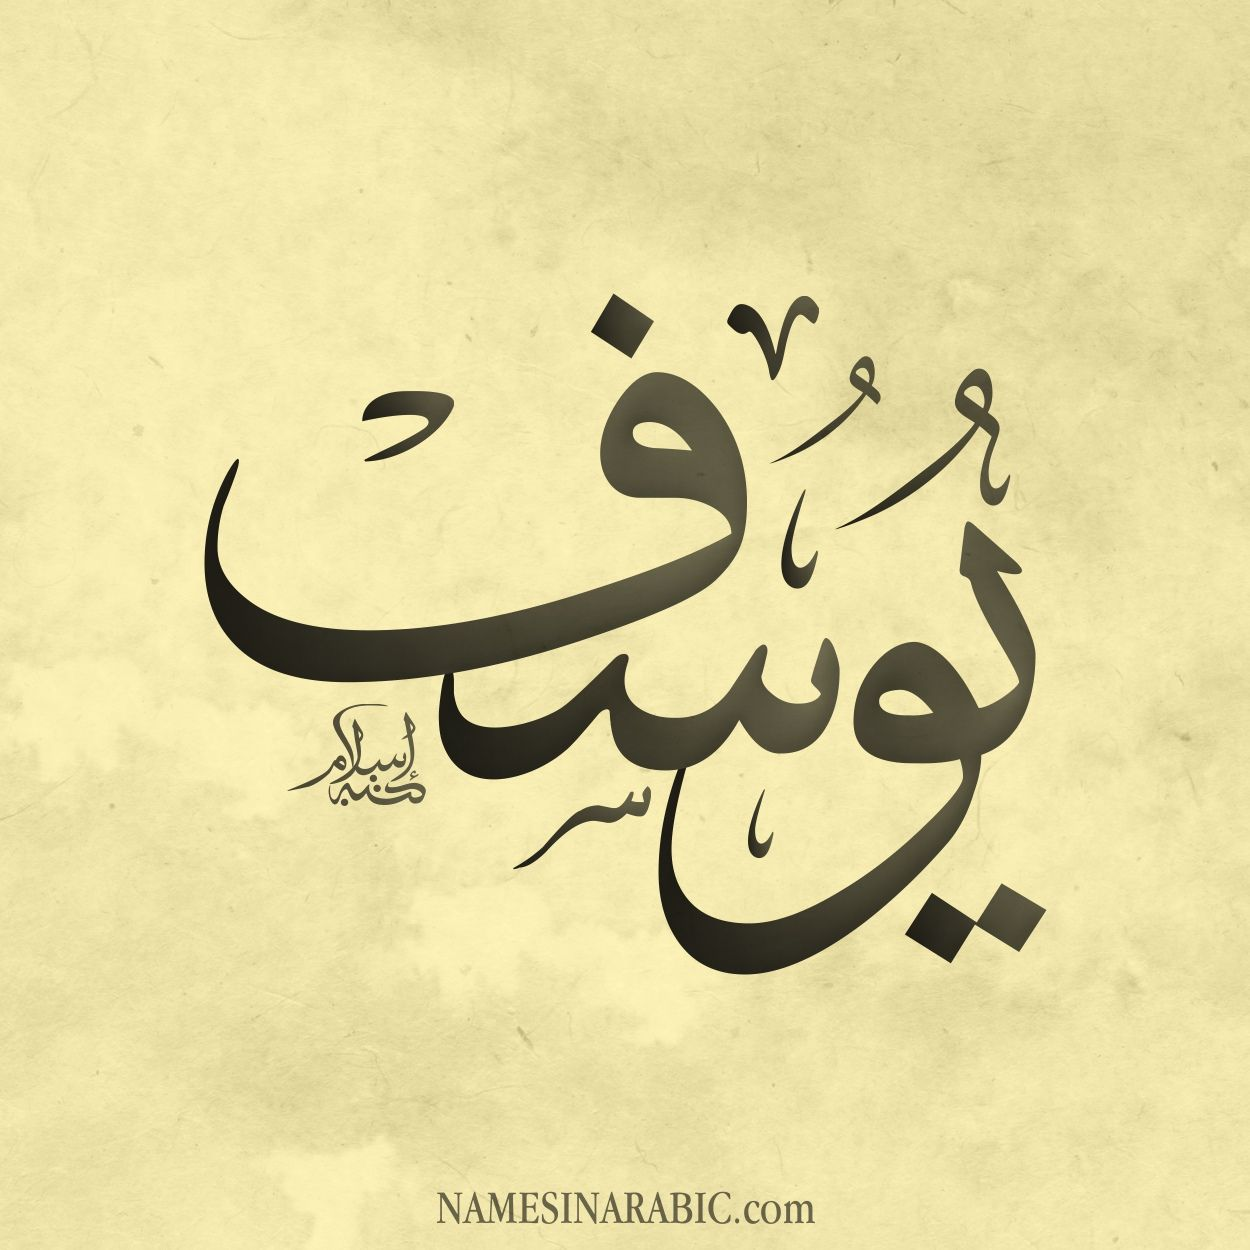 Pin By حسن المهنا On أسماء وكنى عربية Calligraphy Name Islamic Calligraphy Painting Arabic Calligraphy Design